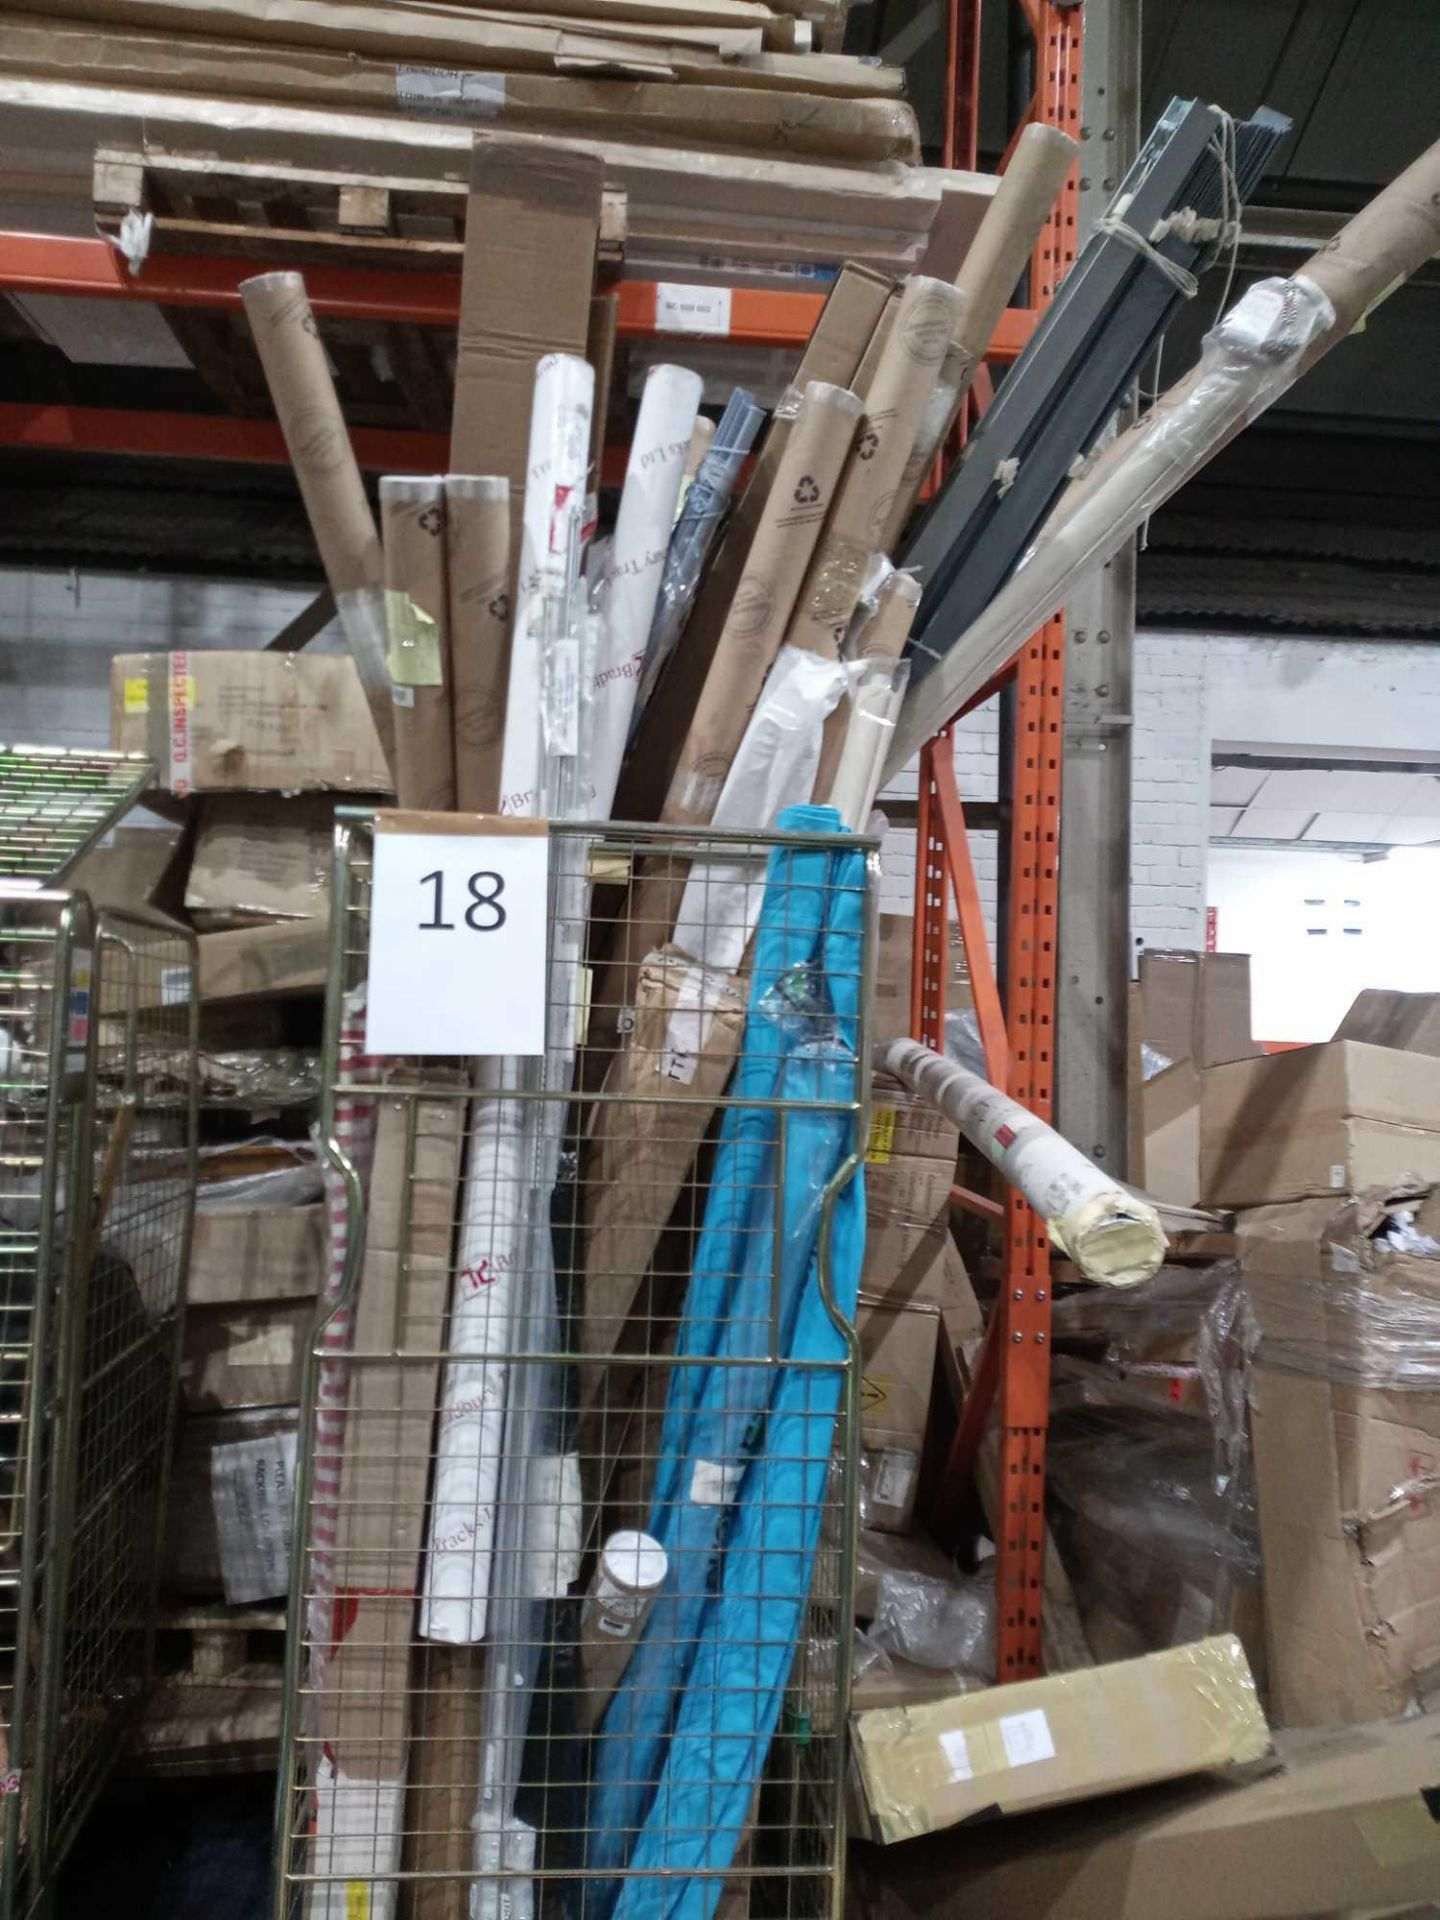 Pallet To Contain A Large Assortment Of John Lewis And Partners Roller Blinds And Blinds